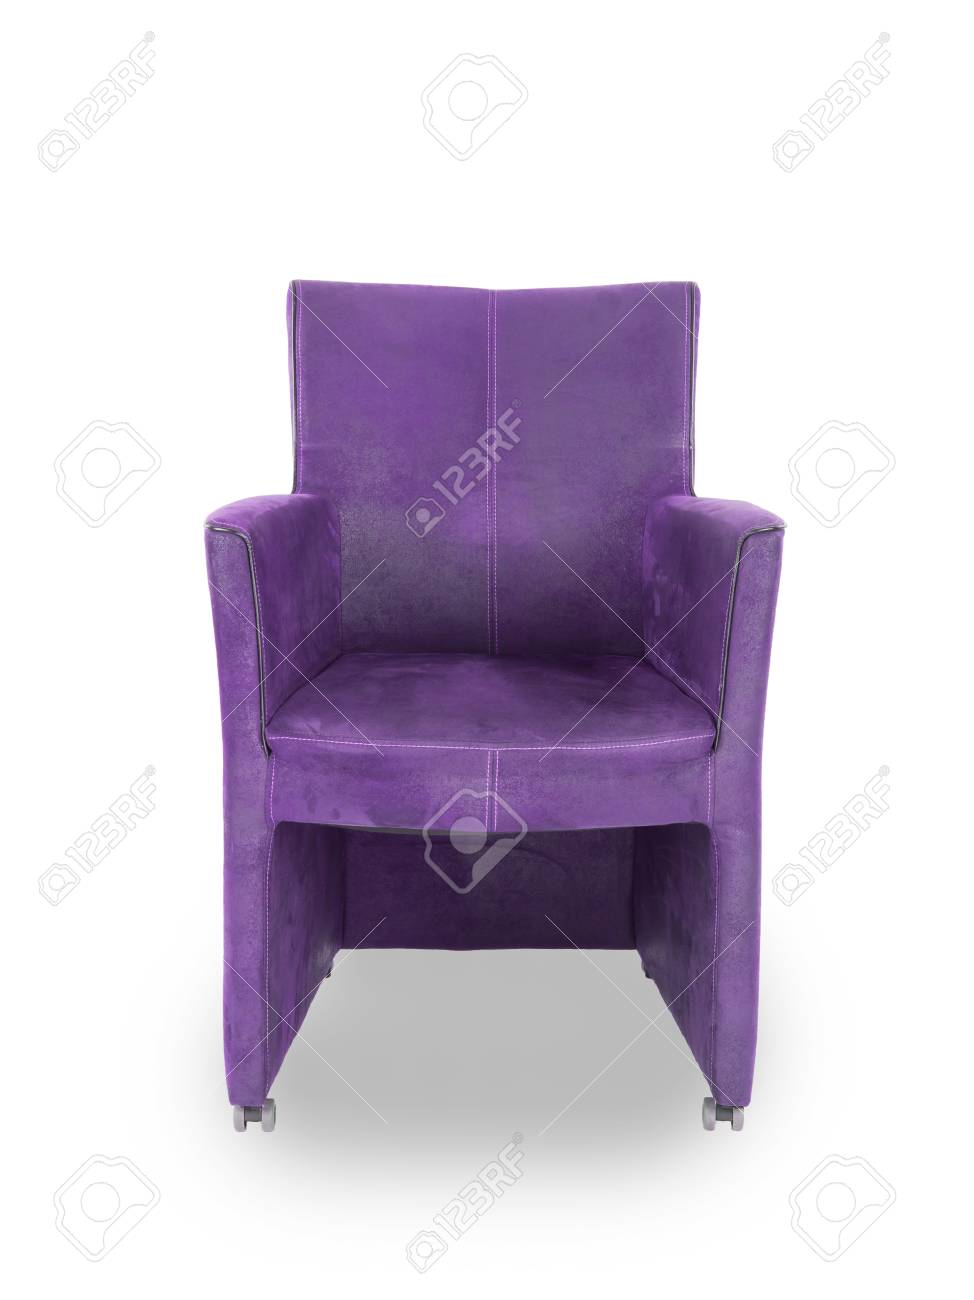 Fabulous Purple Leather Dining Room Chair Isolated On White Beatyapartments Chair Design Images Beatyapartmentscom